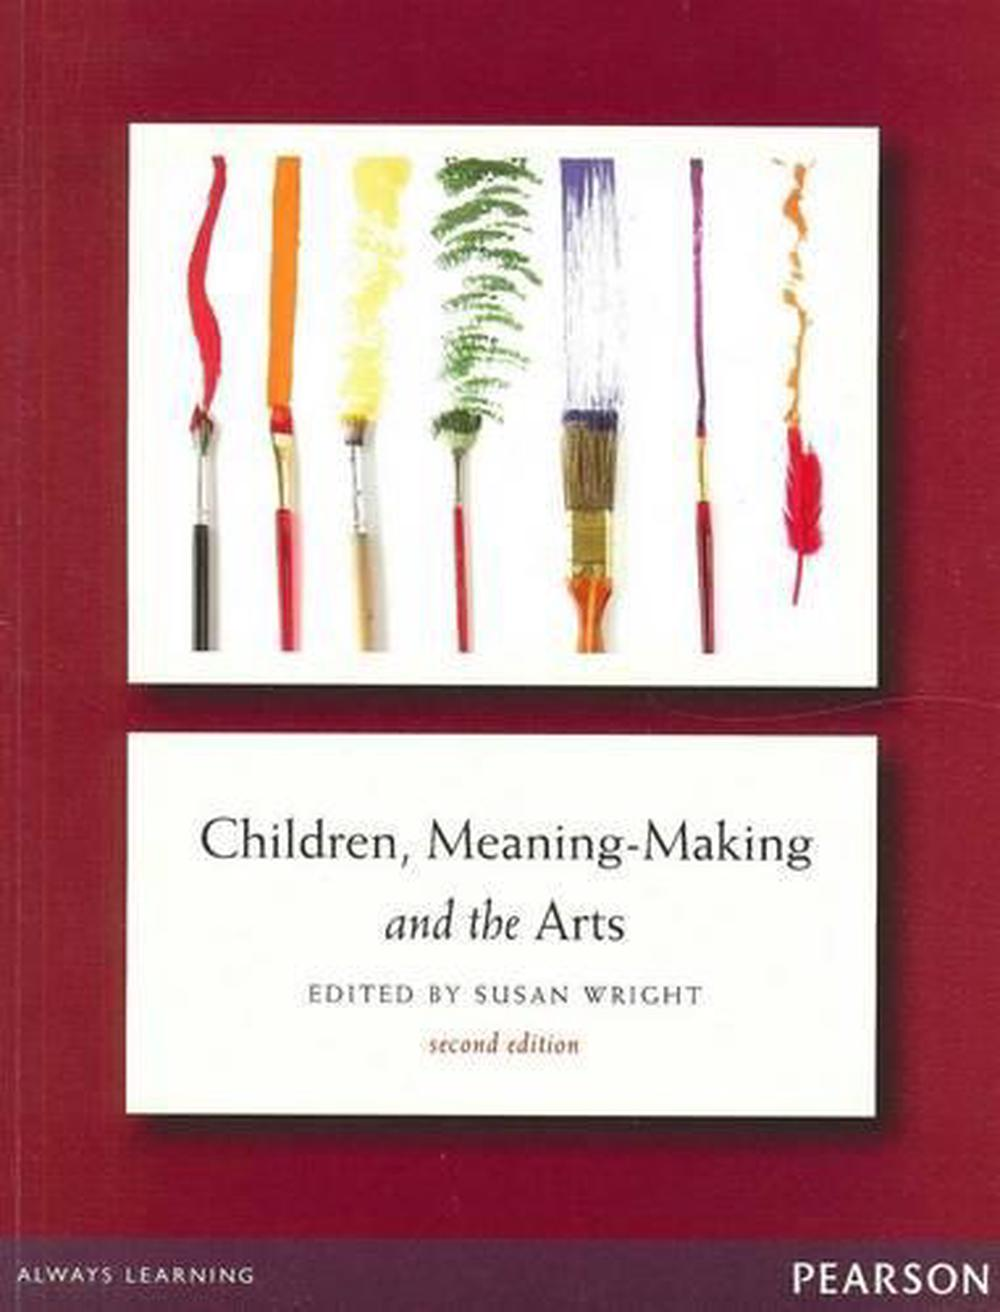 Children Meaning-Making and the Arts, 2nd Edition